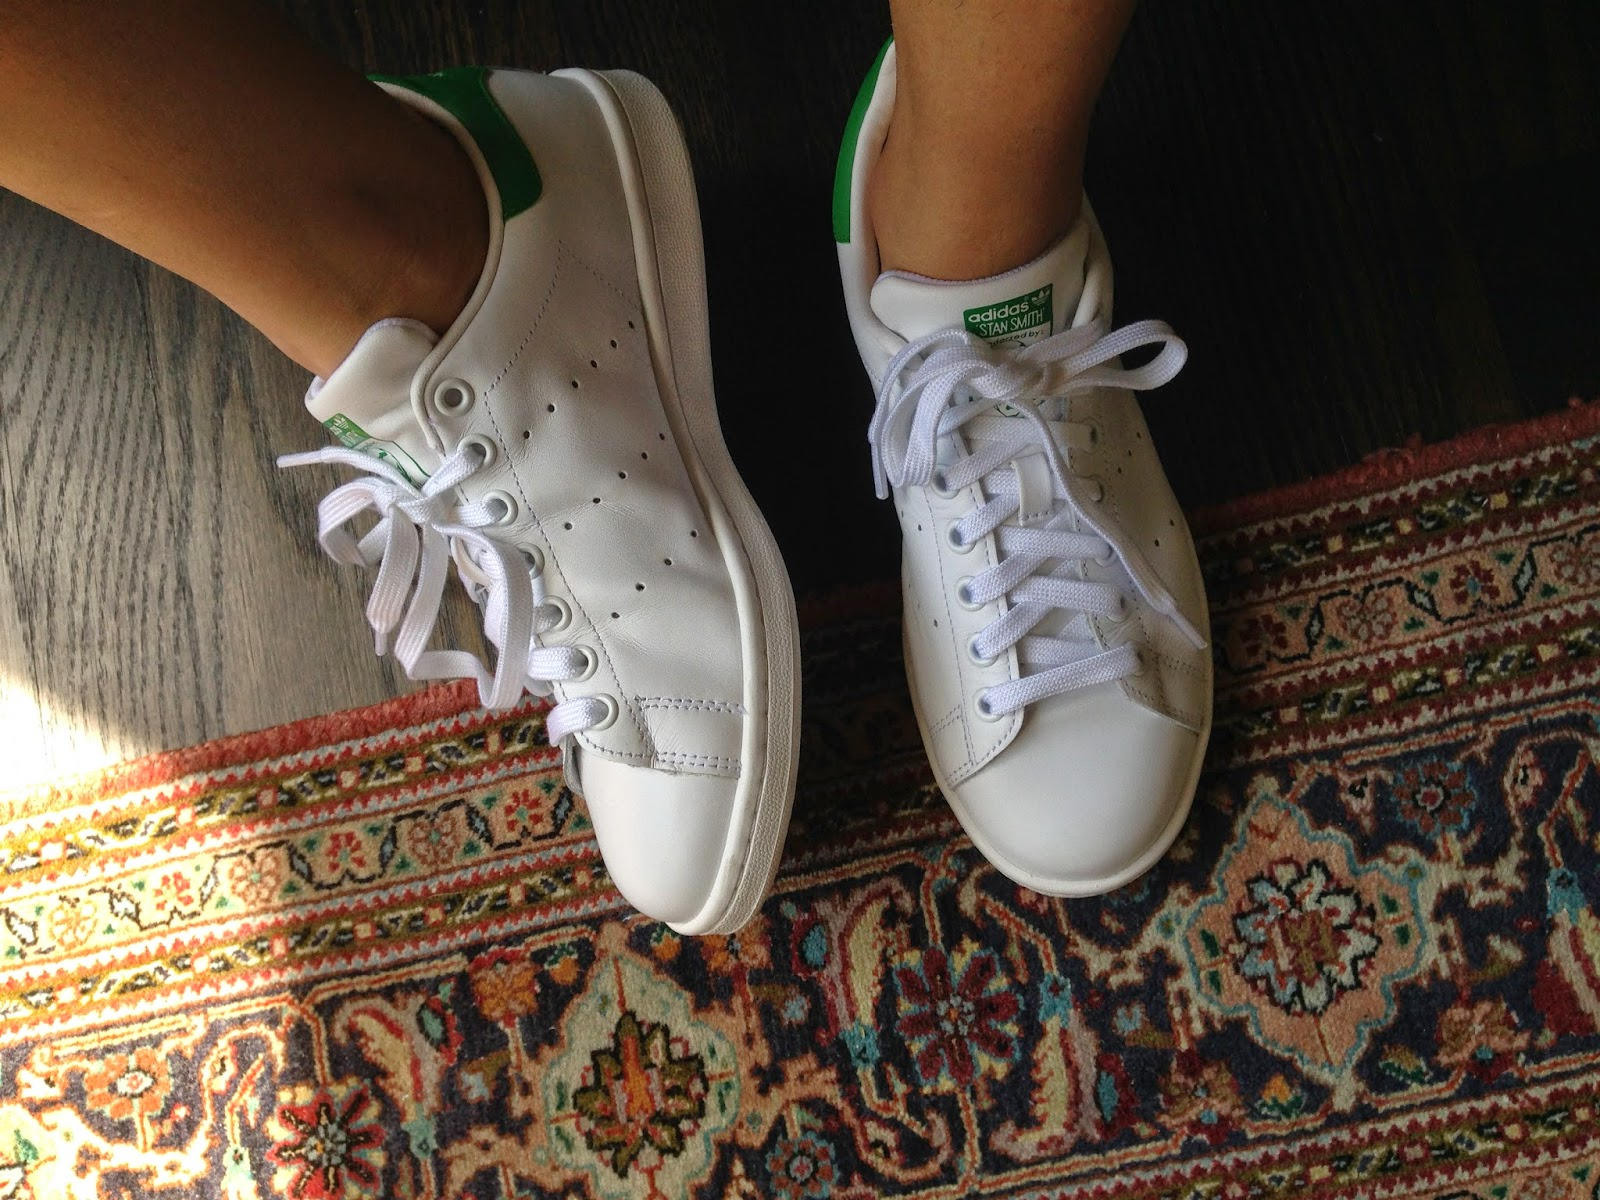 9f357a1a6d5b Adidas Superstar Vs Stan Smith Sizing herbusinessuk.co.uk